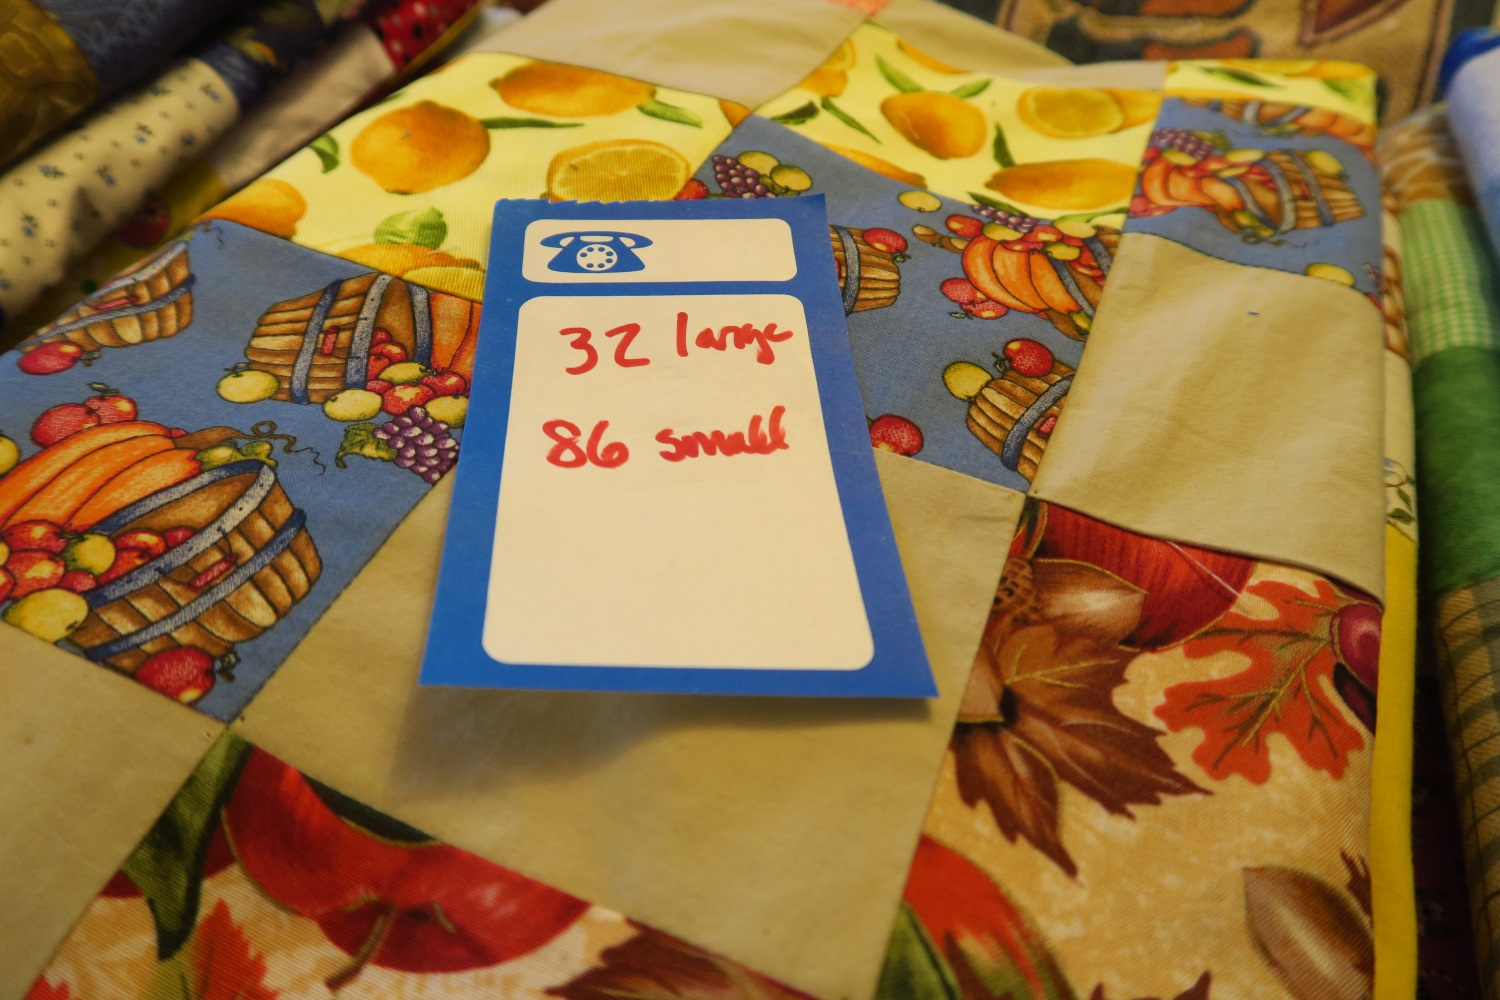 If you are good at adding, you can read and figure out that this is 118. I am so close to 120, it isn't funny! But the problem is, I've kind of set my mind on making 12 of those shadow quilts using solids. Guess I'll go over the 120 goal for his year.  What I'll do is just finish 120 and save the other finished tops til next year. I refuse to allow myself to feel like I have to do more and more and more. If I'm not careful that is how I will be. I have learned to make myself abide by my goals or I will never ever feel finished.  I figured when they gave me a 3 year extension on my residency card that that meant I would finish up 360 more charity quilts for the people of Poland or Ukraine. :) It may seem like a funny way of thinking to you, but that's what I've done.  Oh, and because I only added 4 small instead of 5, it should be 87 small.